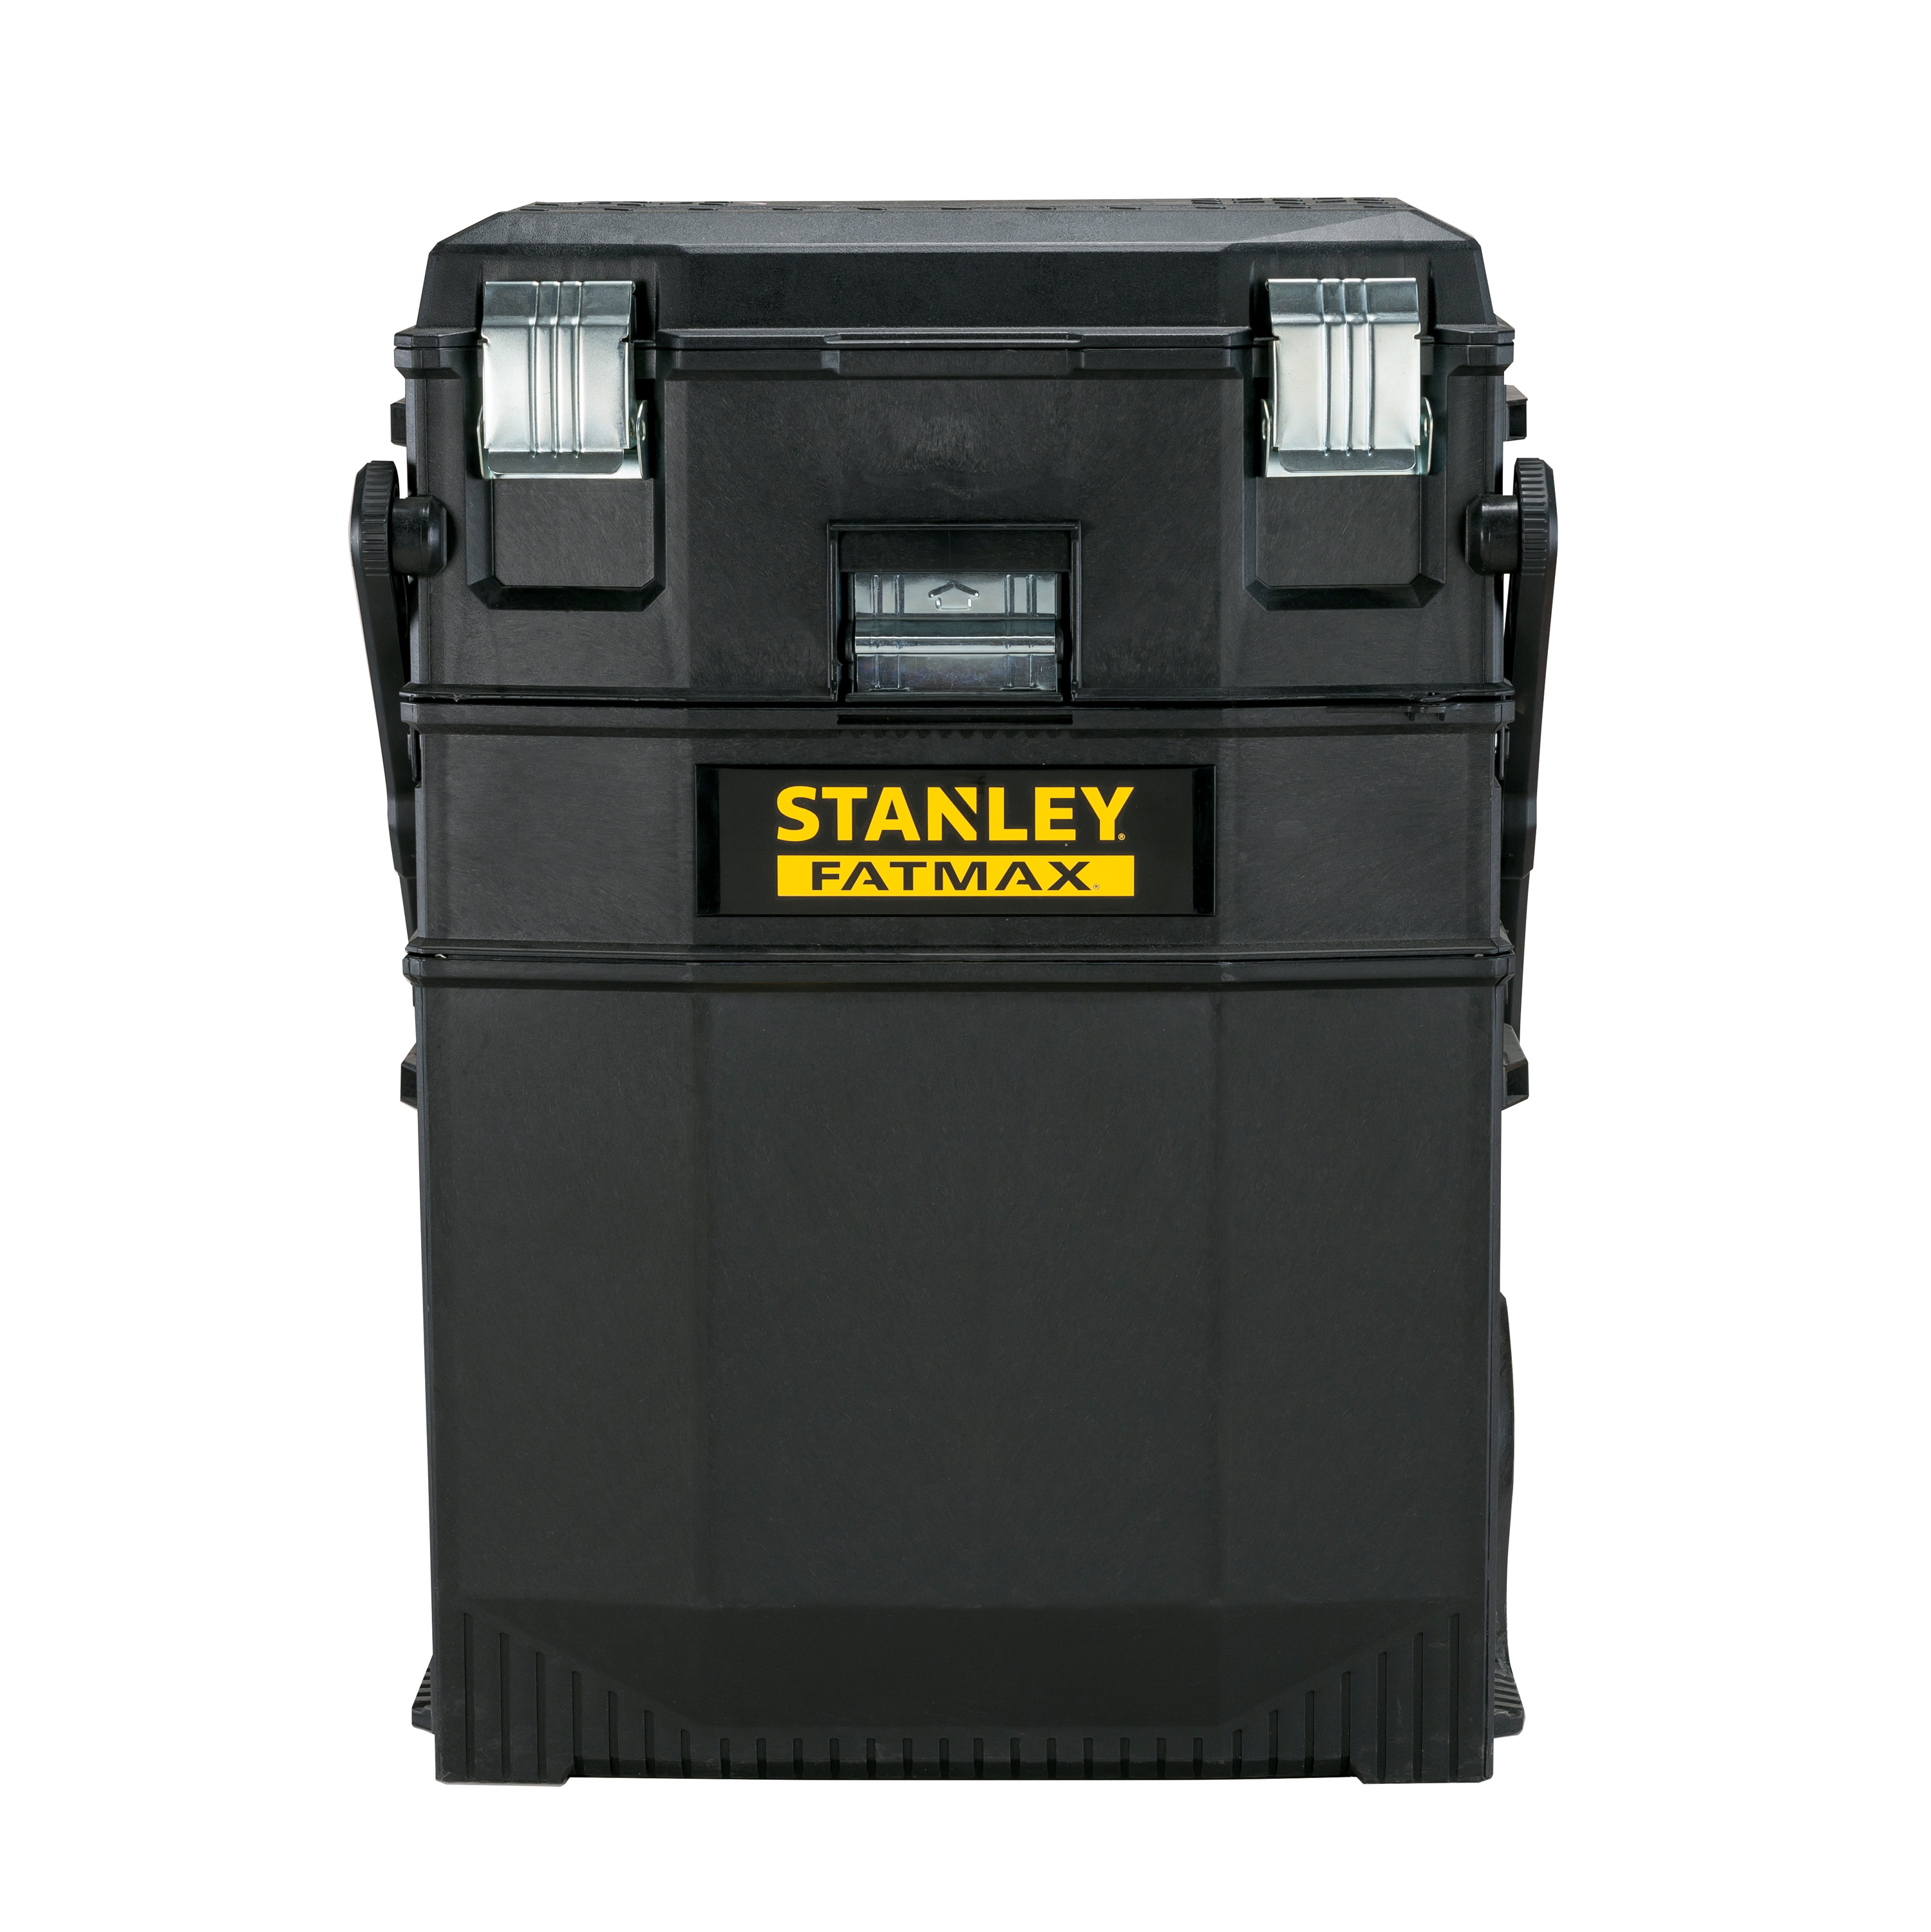 STANLEY FATMAX 020800R 4-in-1 Mobile Work Station